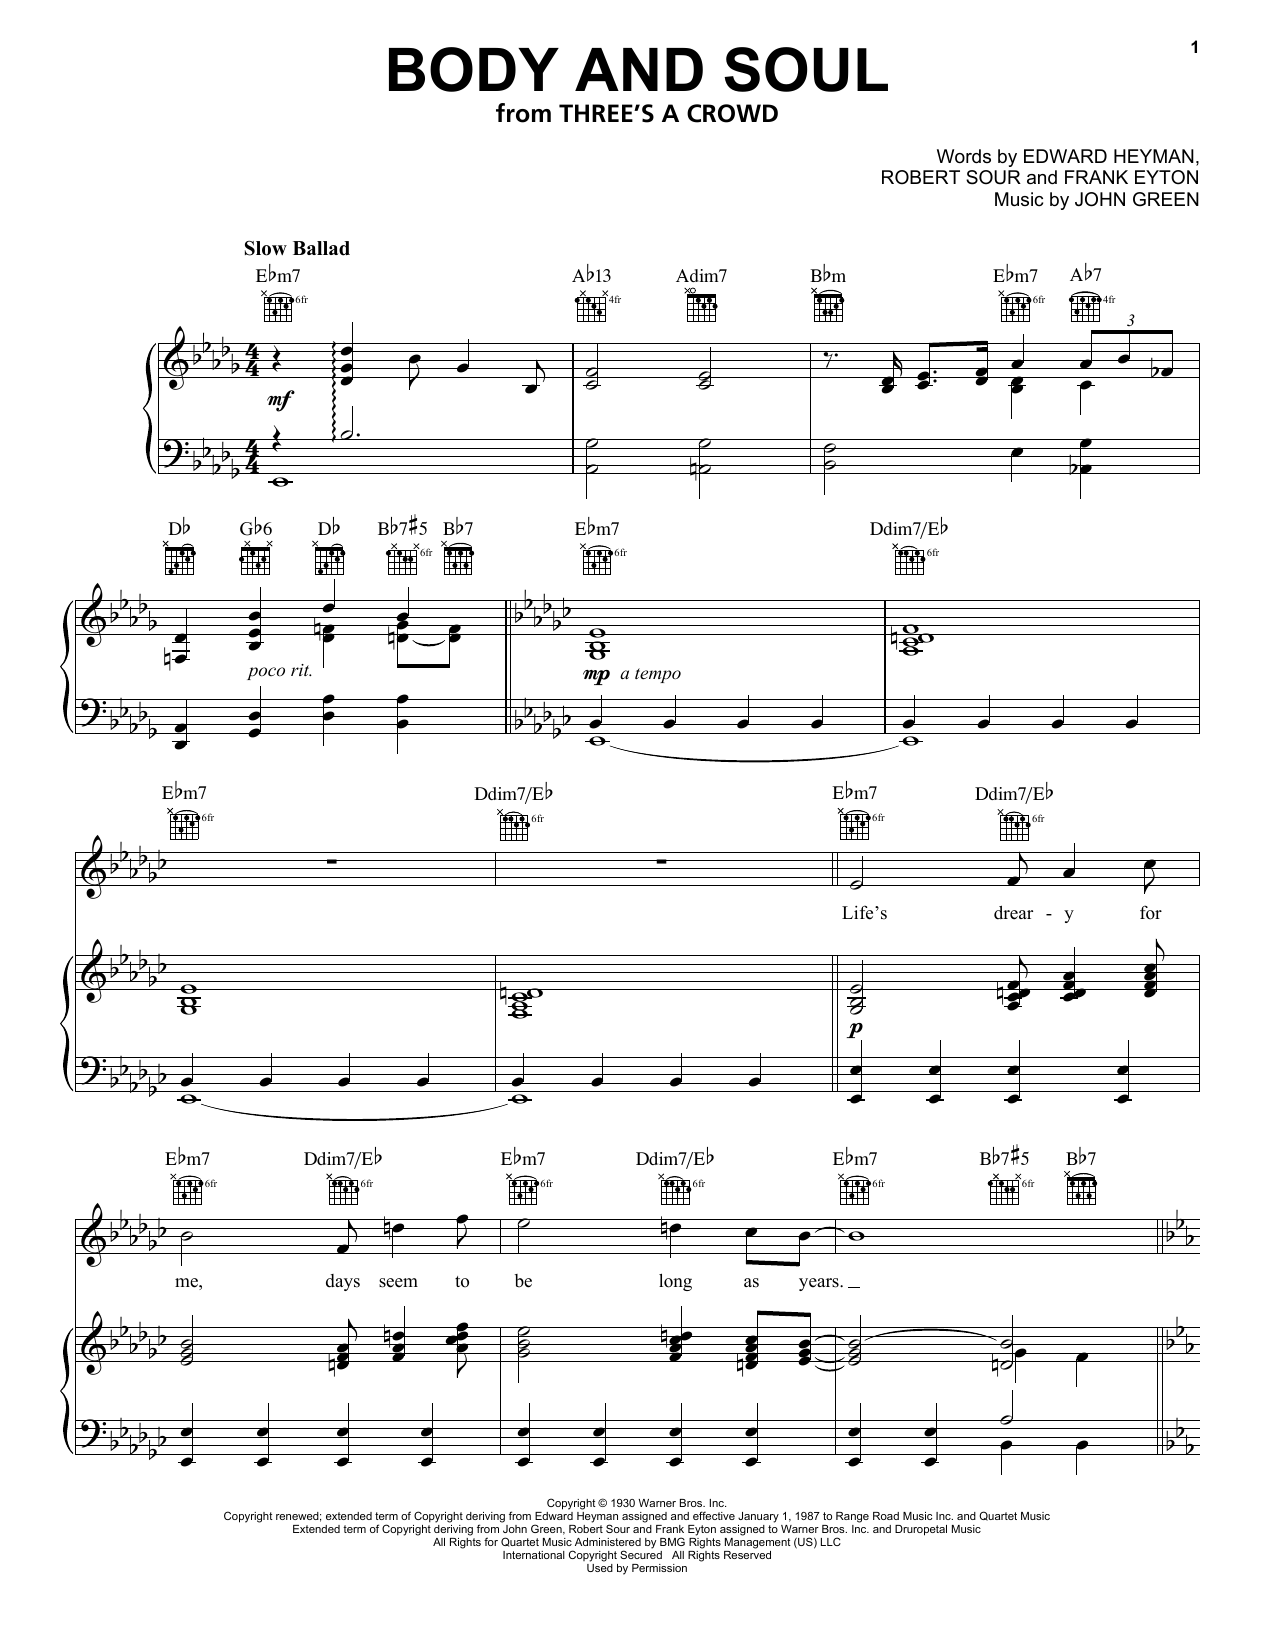 Body And Soul sheet music for voice, piano or guitar by Robert Sour